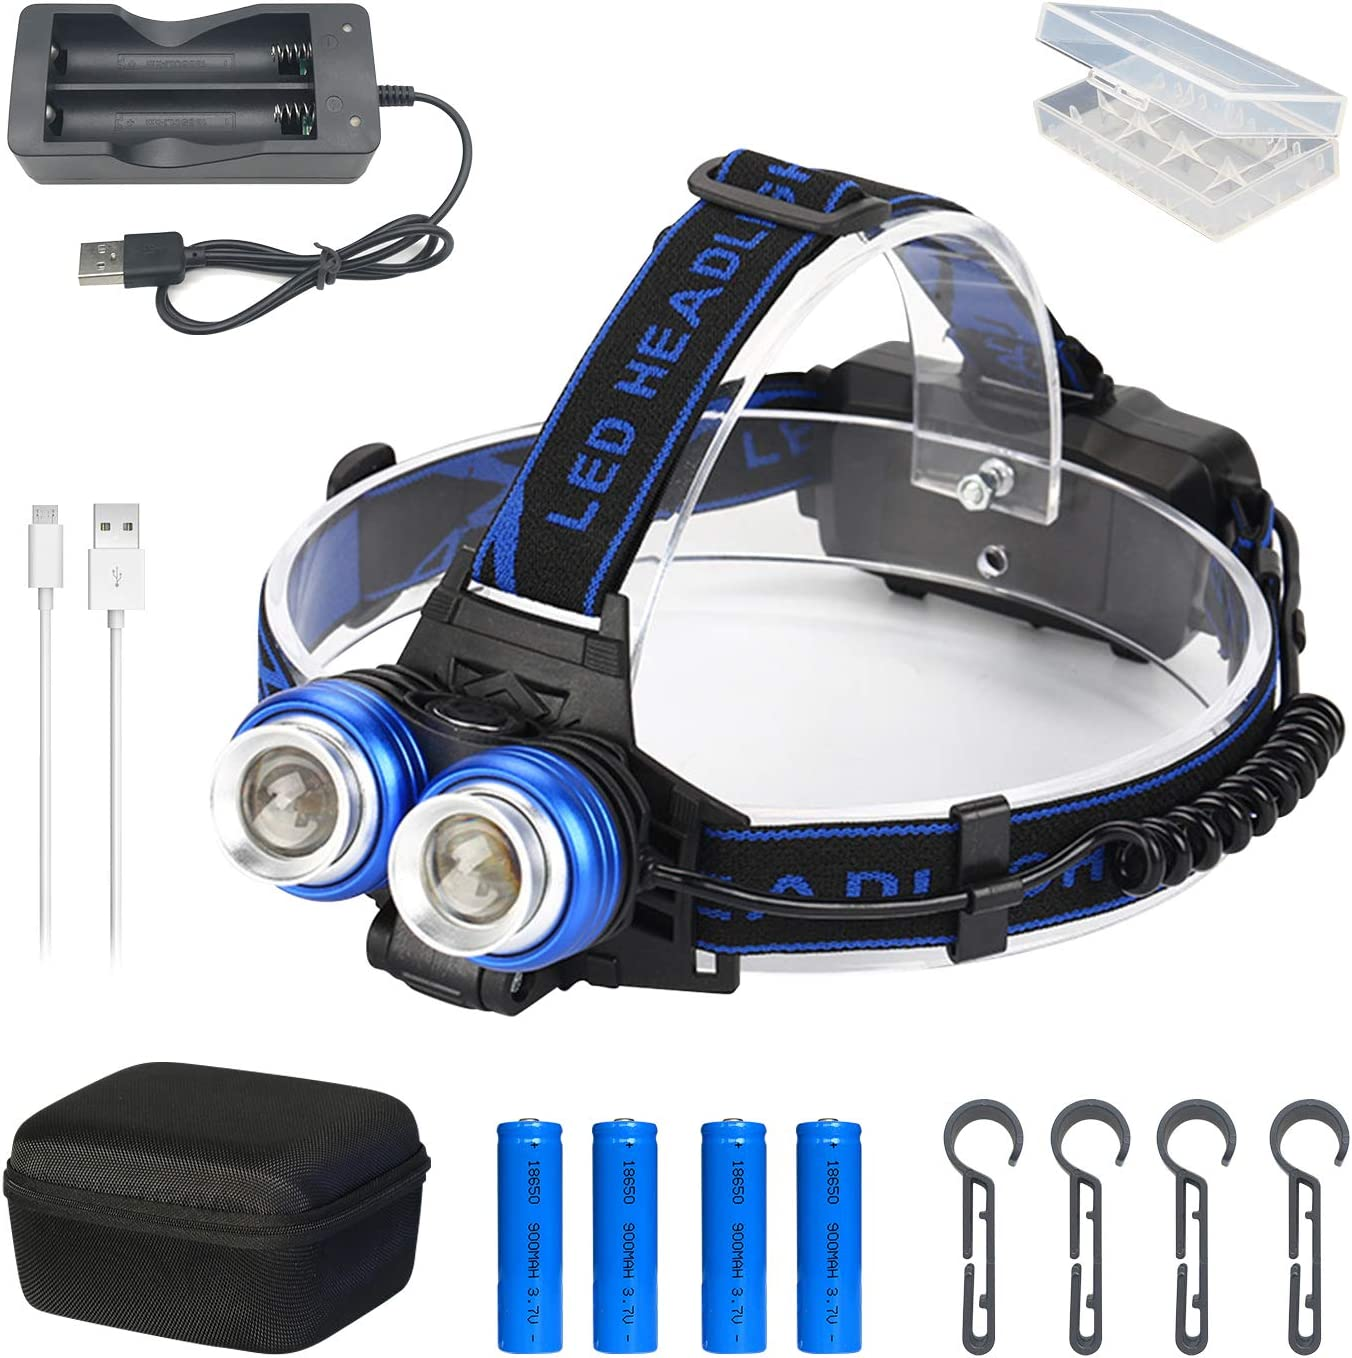 Hands-Free Led Flashlight for Reading Useful and Interesting Headlamp Kit Rechargeable Head Lamp Can Rotate 360/° Running Camping and Hiking,Waterproof Camping Gear Accessories Fishing